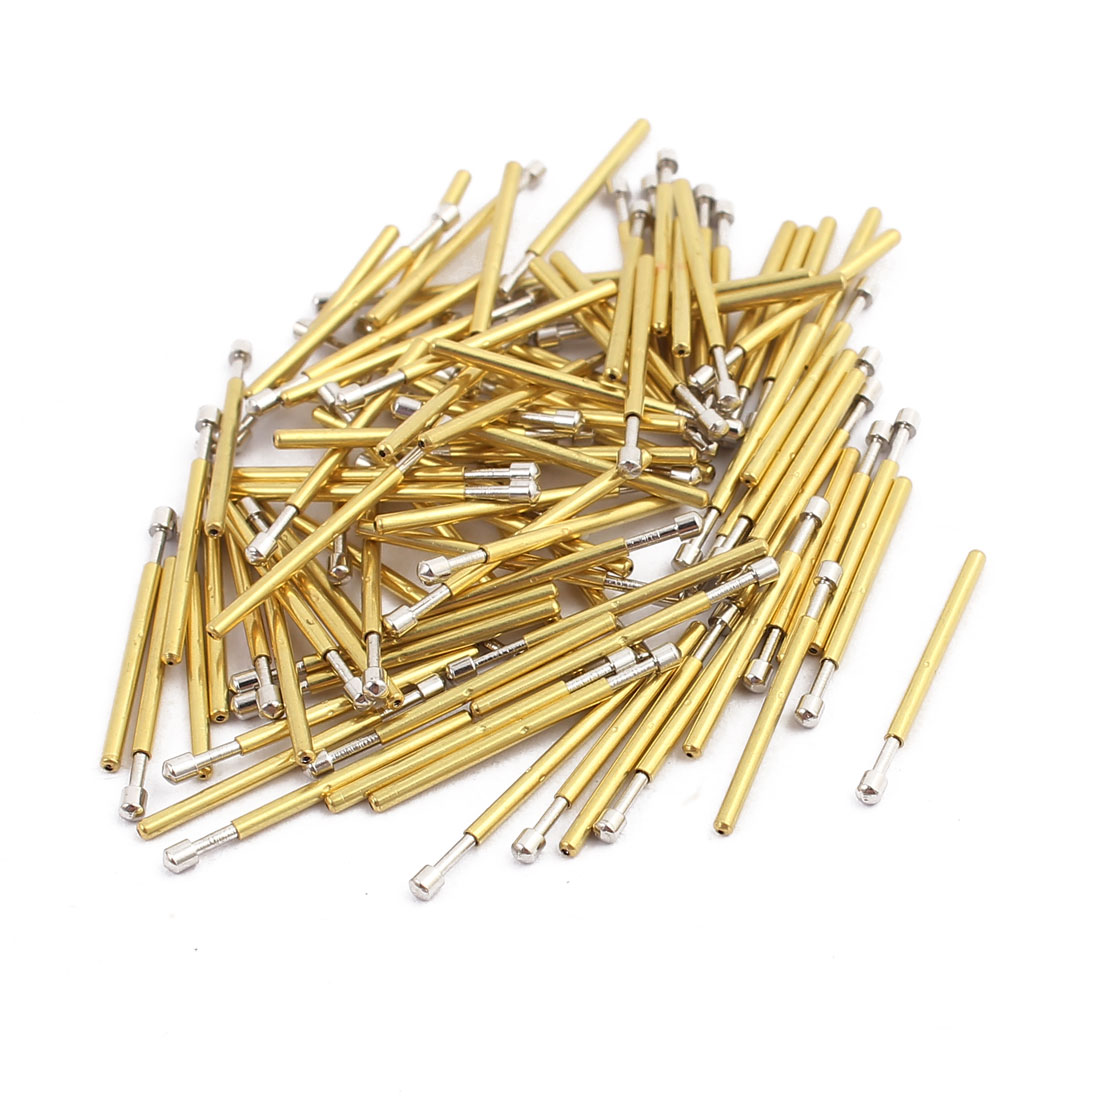 100pcs P75-D2 1.0mm Dia 17mm Length Metal Spring Pressure Test Probe Needle